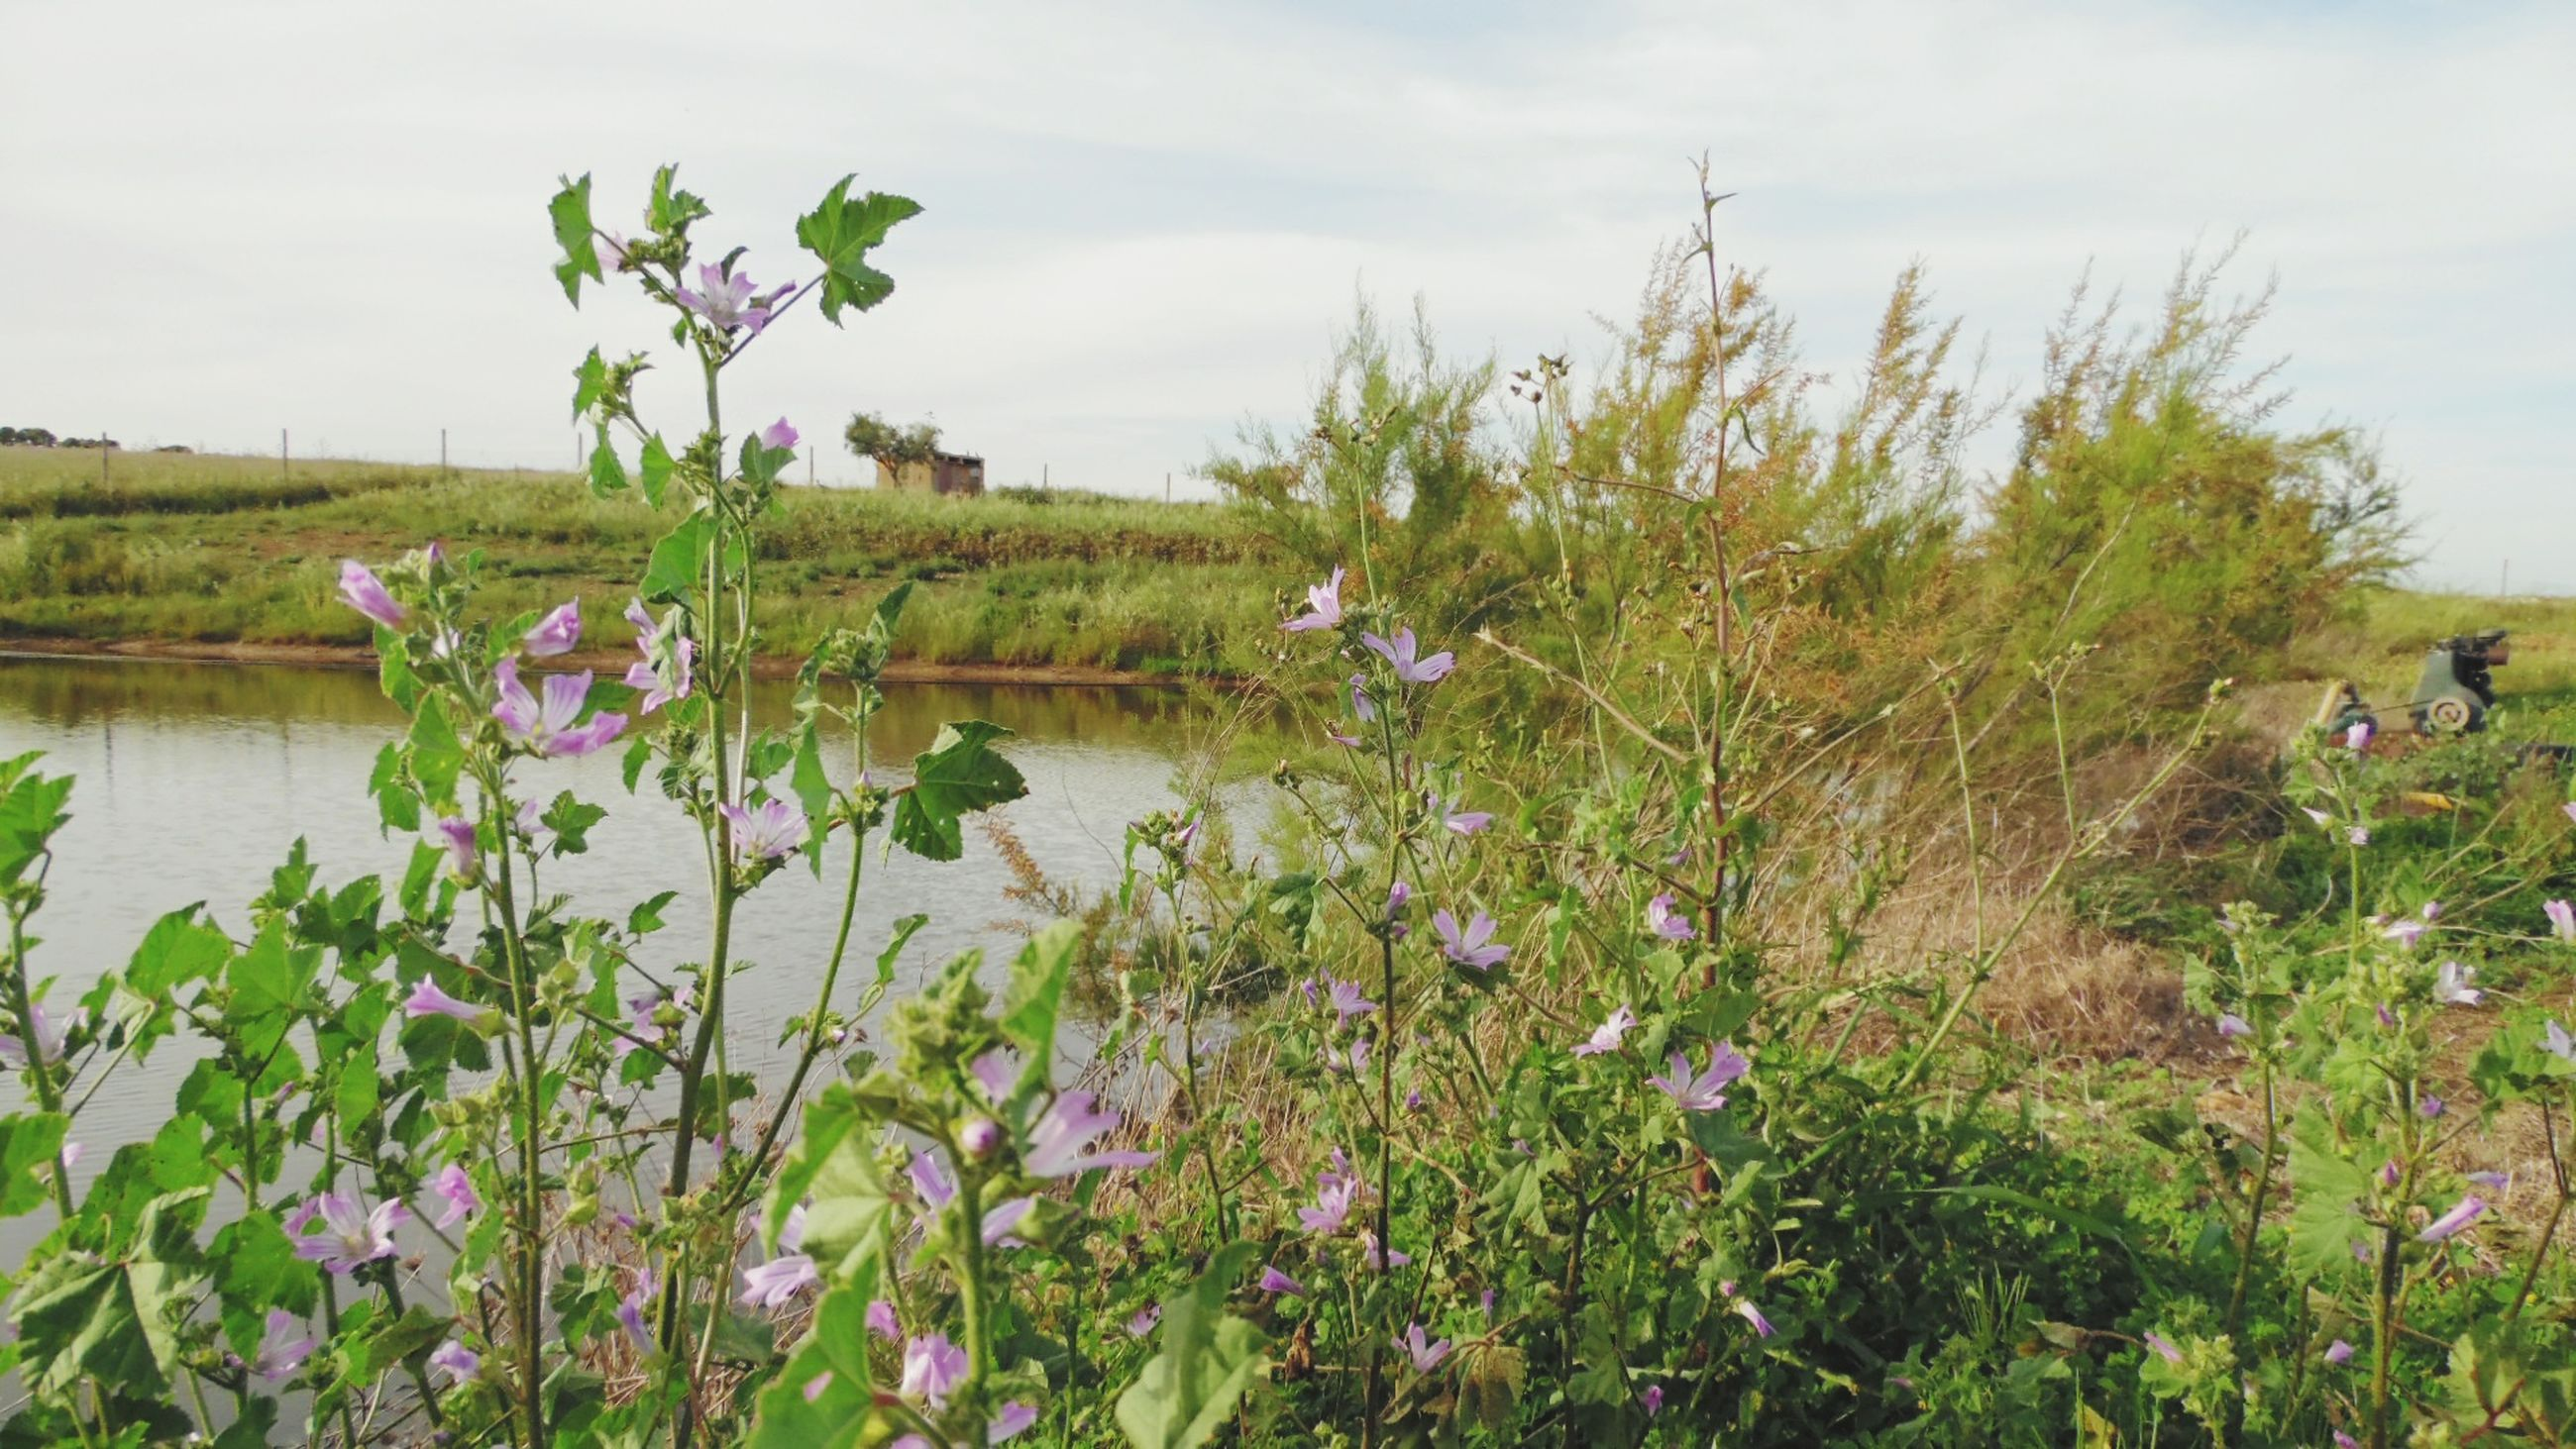 flower, growth, plant, beauty in nature, freshness, sky, water, nature, tranquility, tranquil scene, fragility, lake, growing, blooming, grass, stem, field, scenics, day, green color